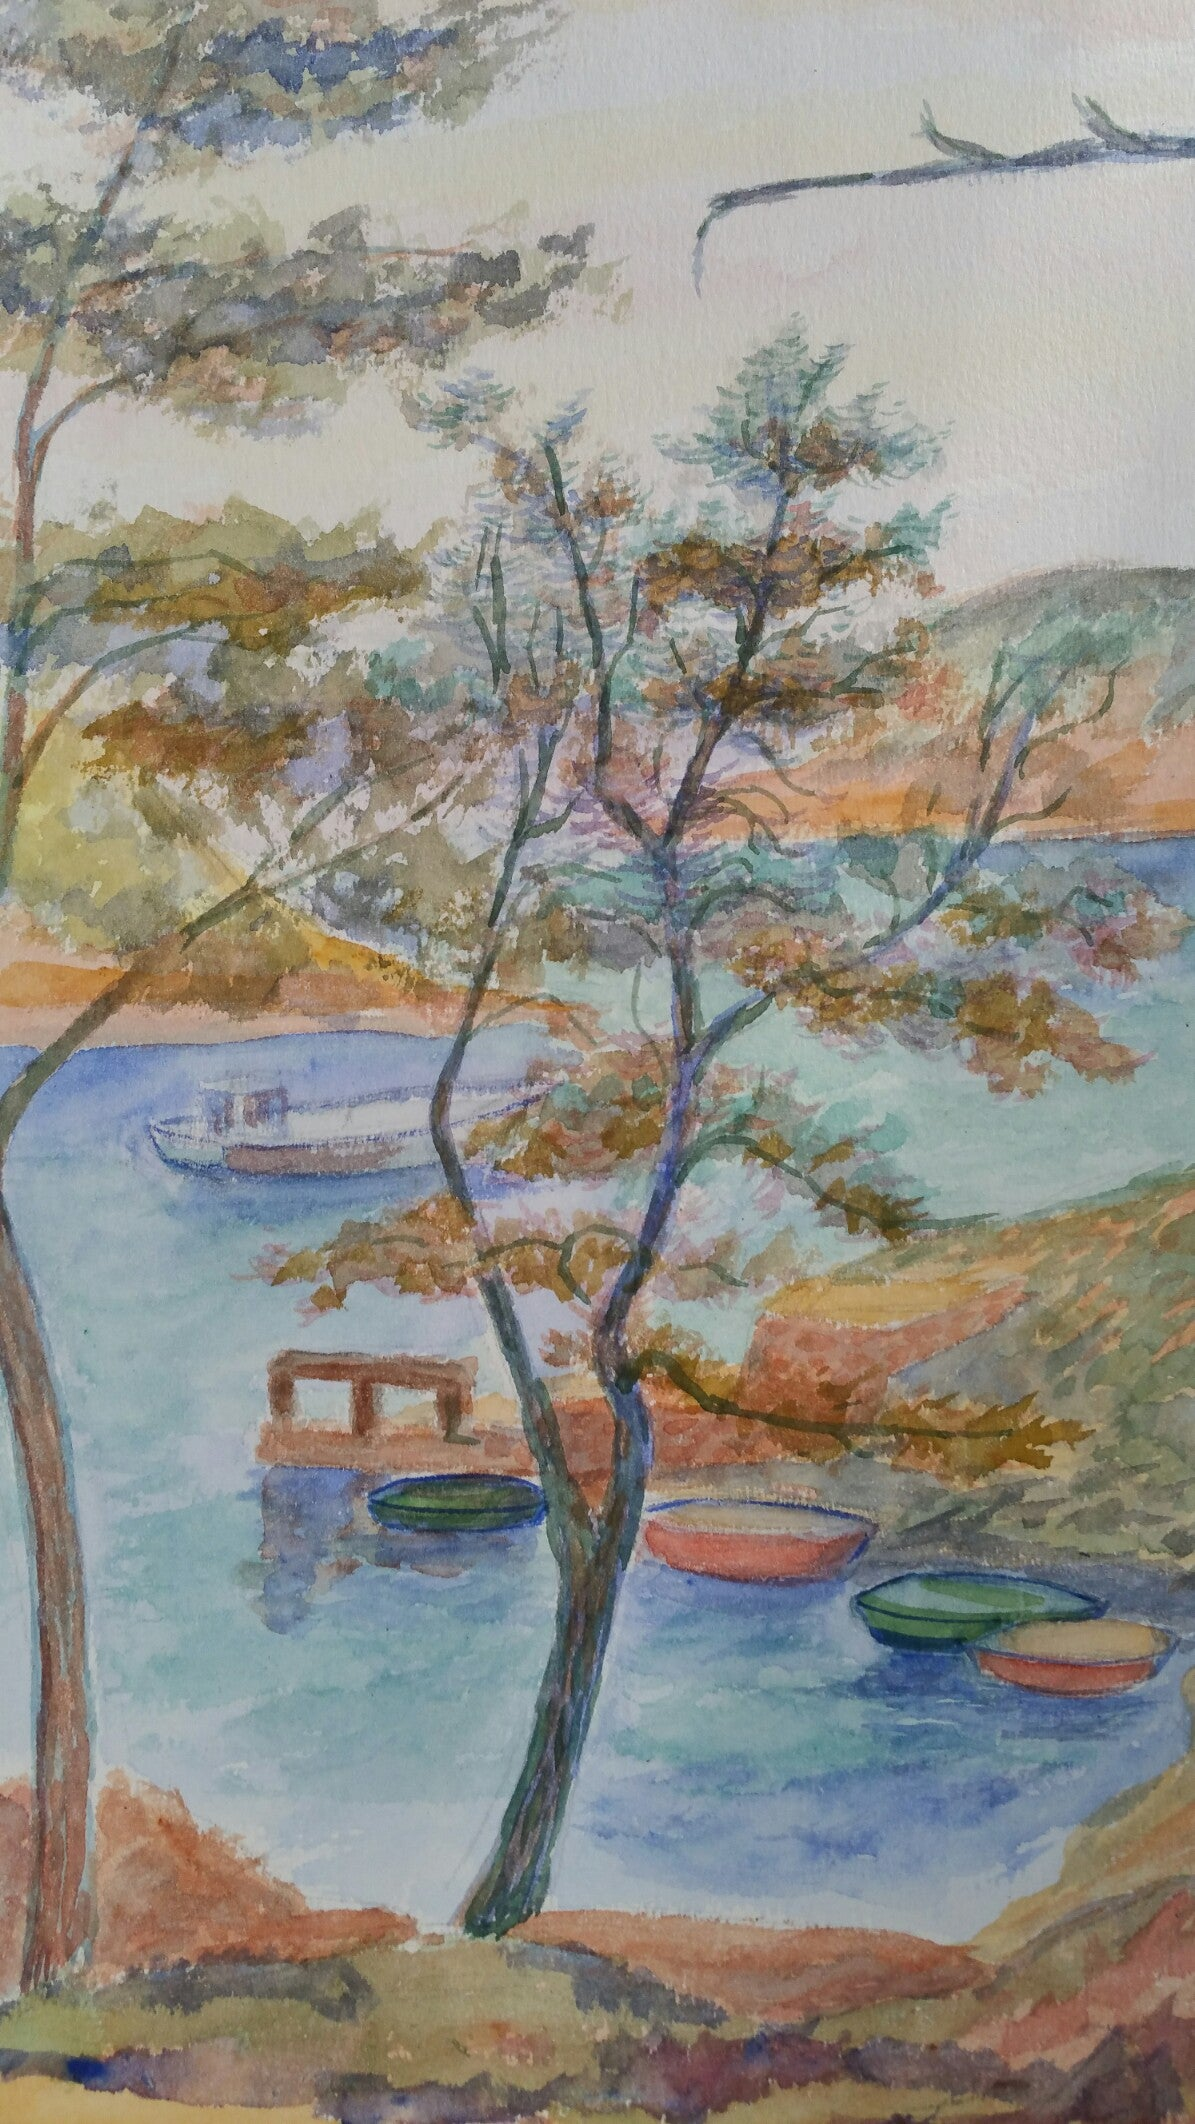 Provence Boats Landscape Post-Impressionist Signed 1940's Painting